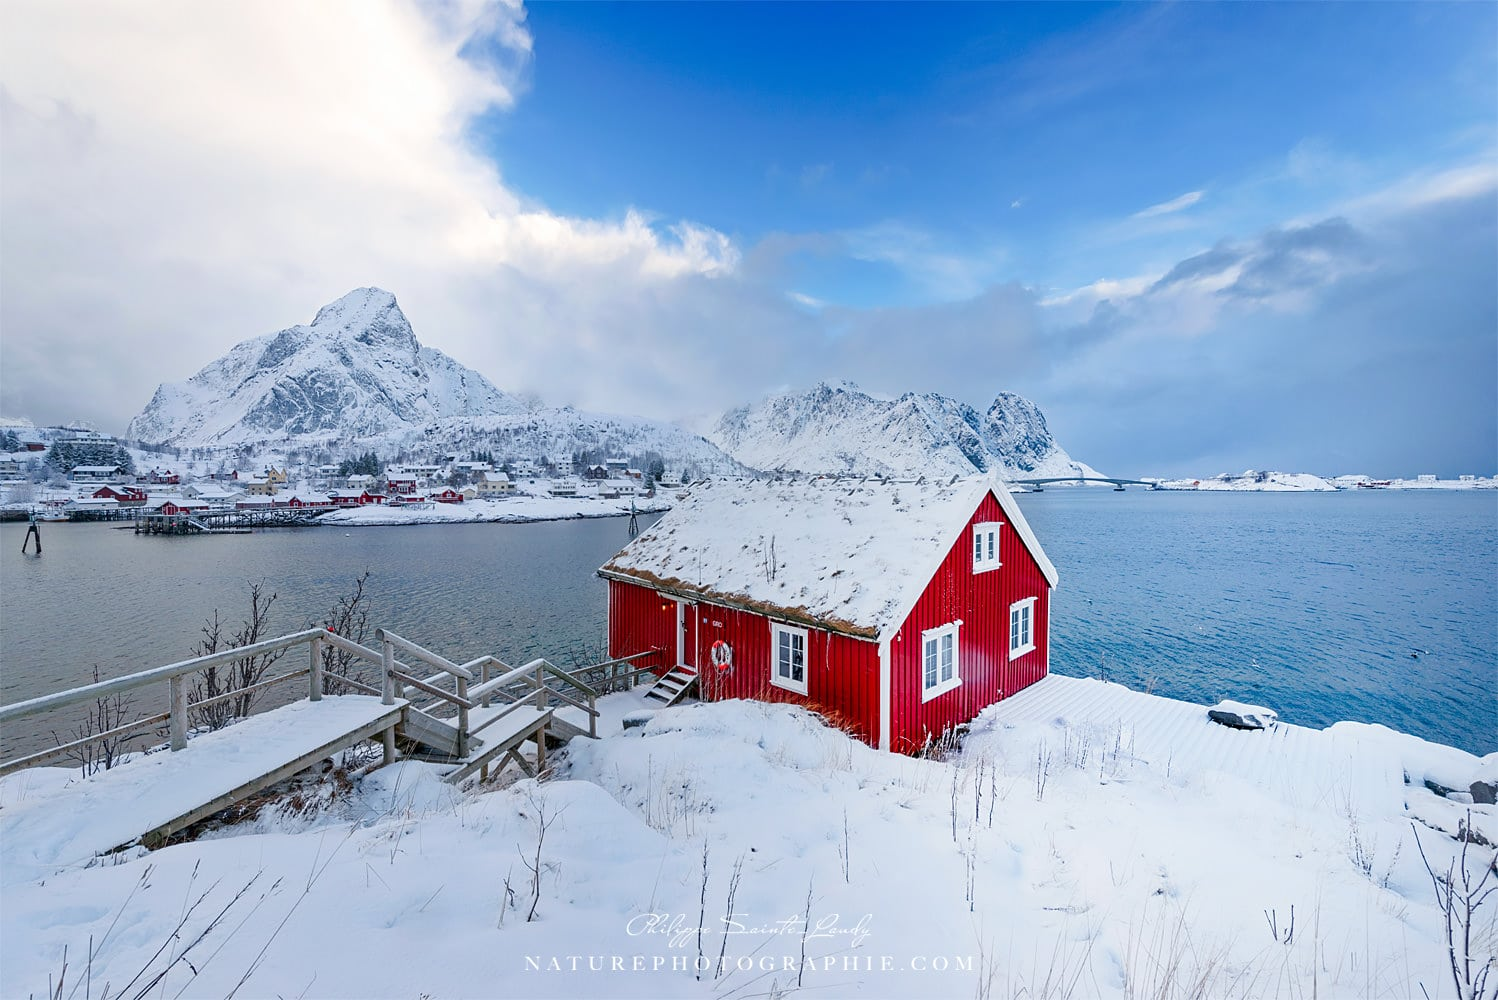 The Red House Near The Fjord